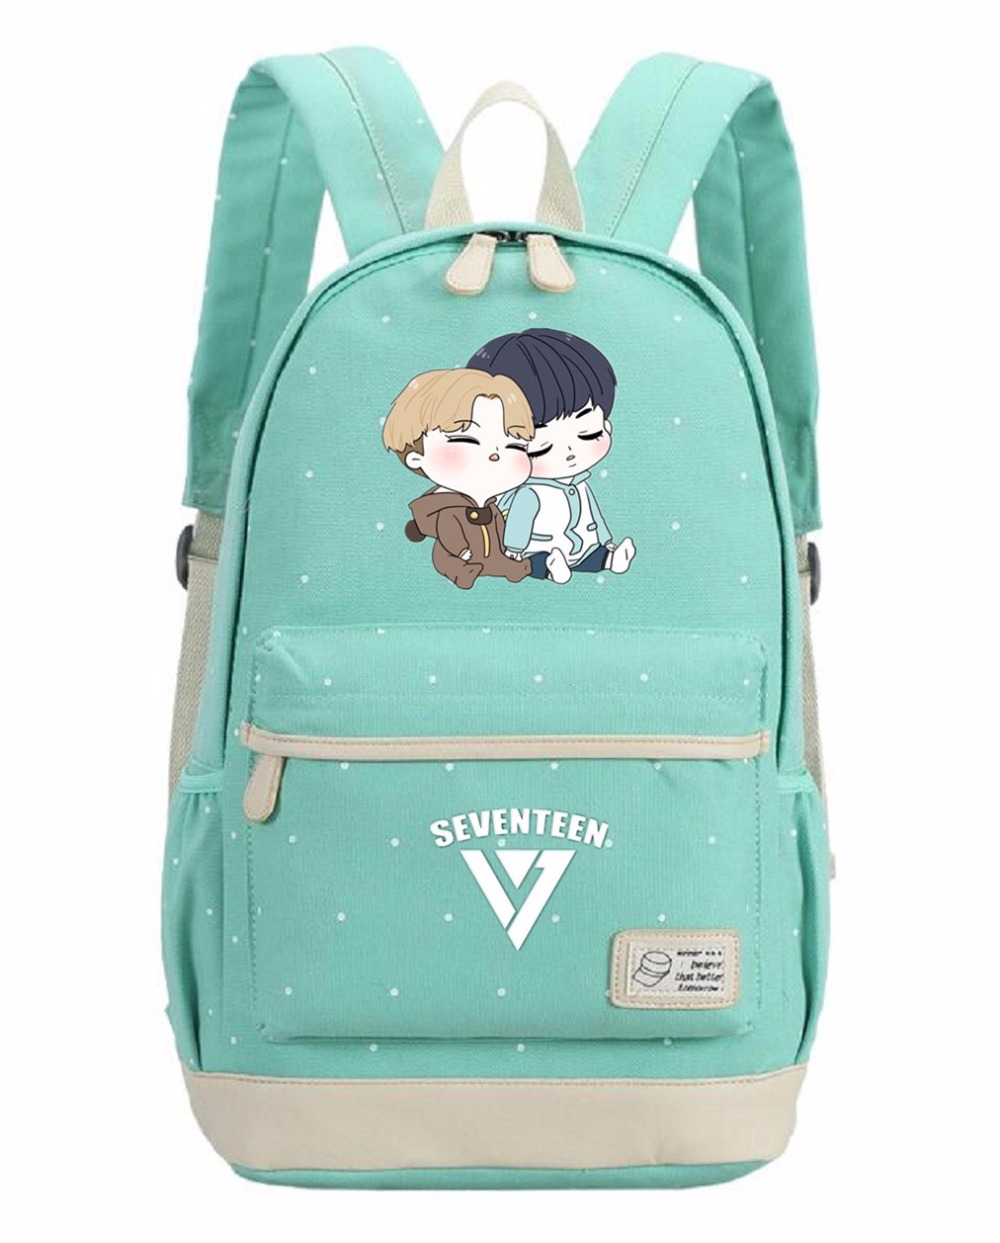 Komikoy Seventeen 17 Canvas Laptop Bag Flower Rucksacks Backpack Student School Travel Bags Daypack Removing Obstruction Men's Bags